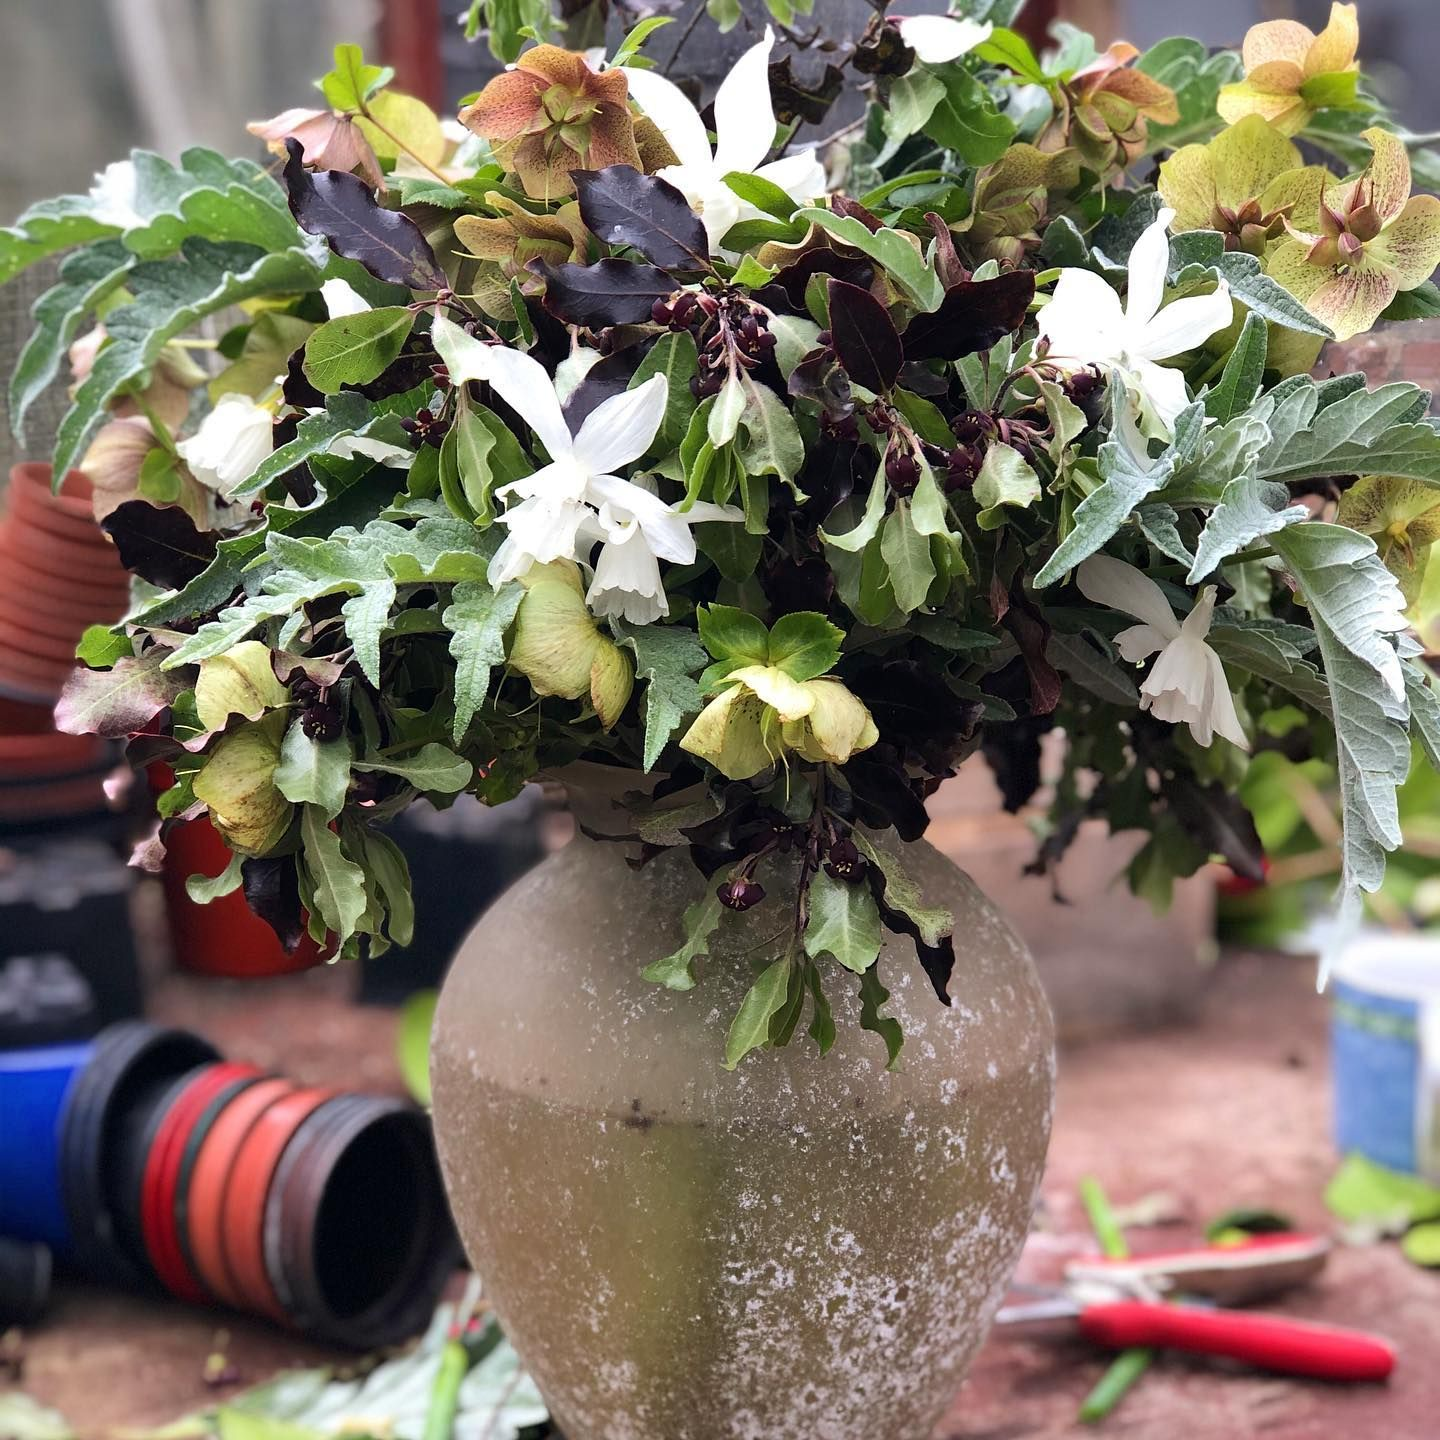 Picked from her garden for a beloved friend who needed a bit of flowery help it was amazing to be walking in a garden and to touch some flowers keeping our distance theres not much else we can do but I was glad to do this #covidkindness #sadday #naturalbeauty #flowerdiary beautiful vase of spares made by Lydia #twins #heavenlyhandmade